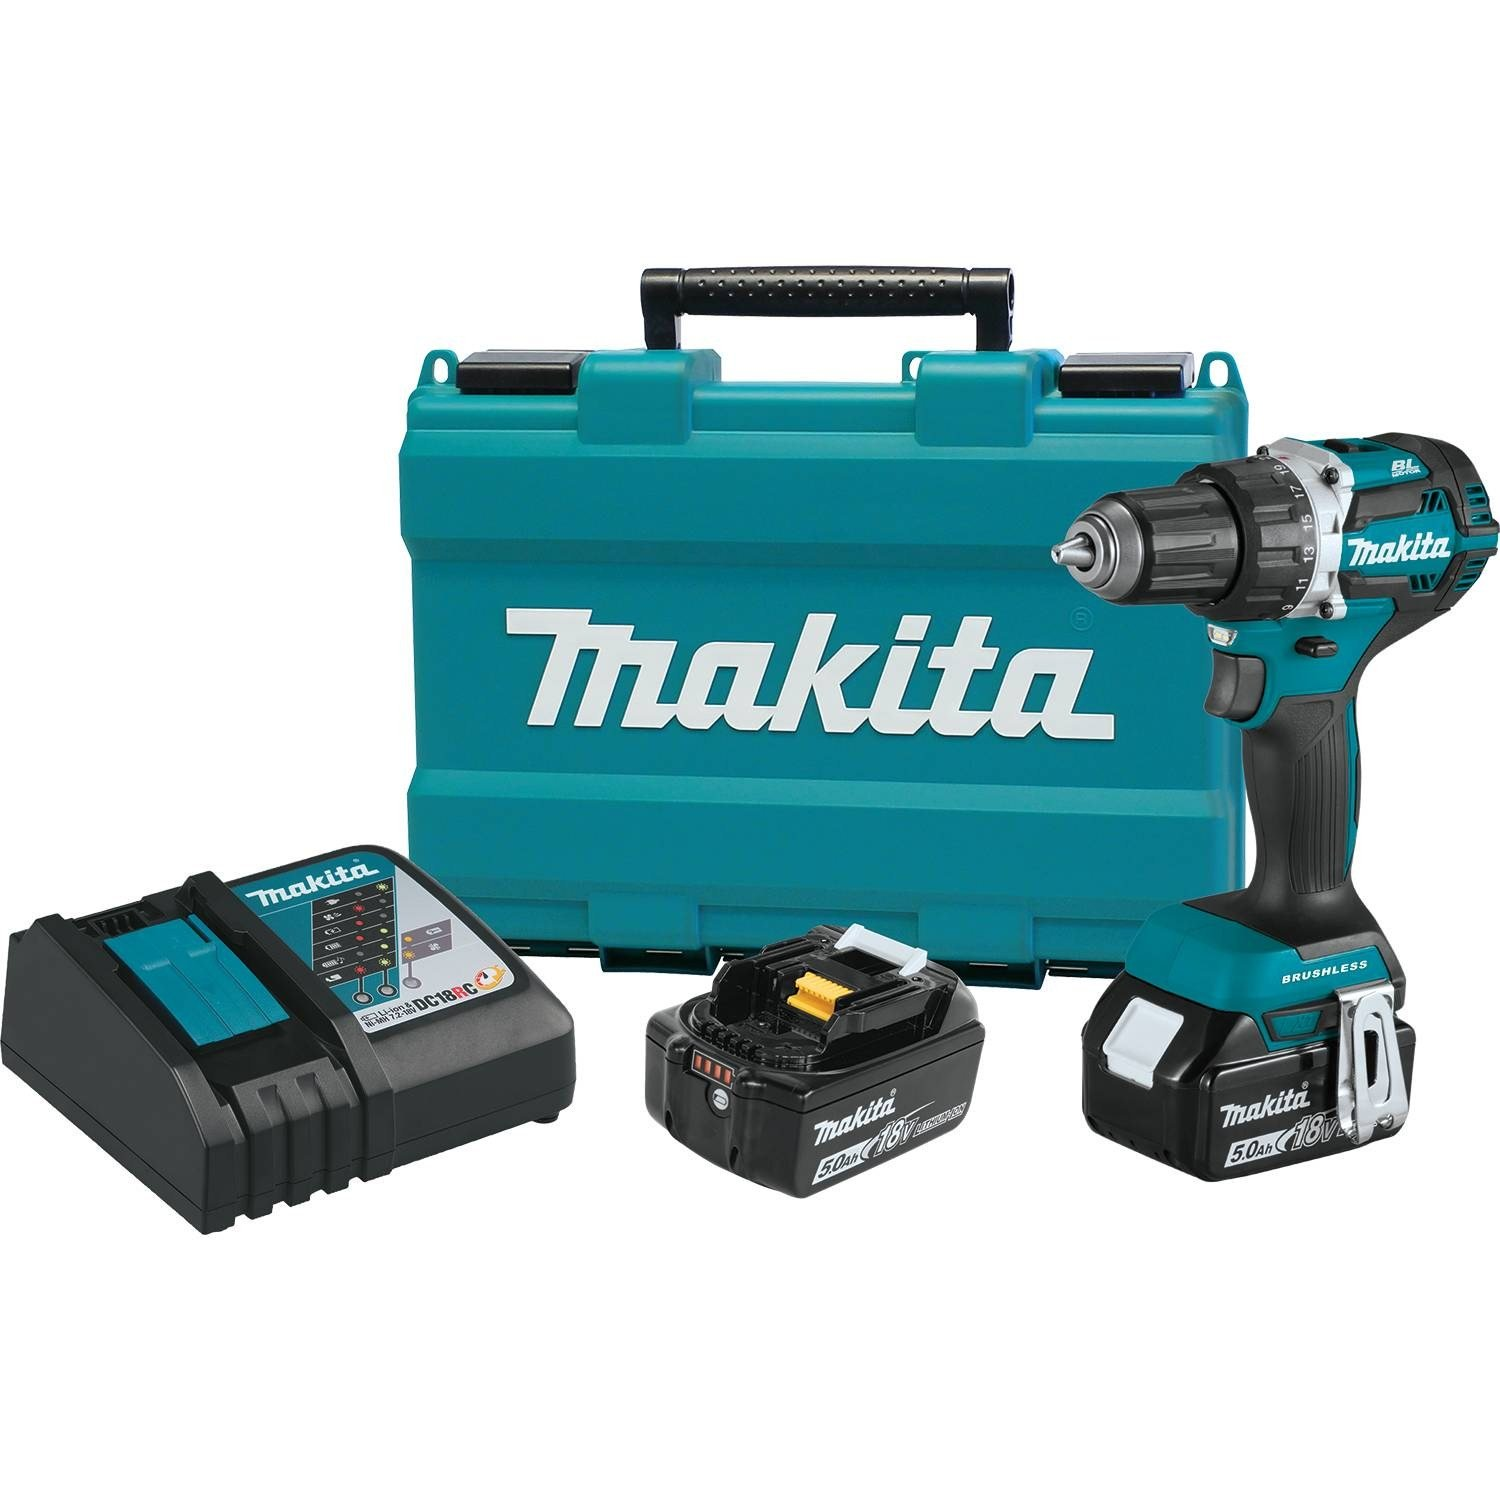 Makita XFD12T 5.0 Ah 18V LXT Lithium-Ion Compact Brushless Cordless 1/2'' Driver-Drill Kit